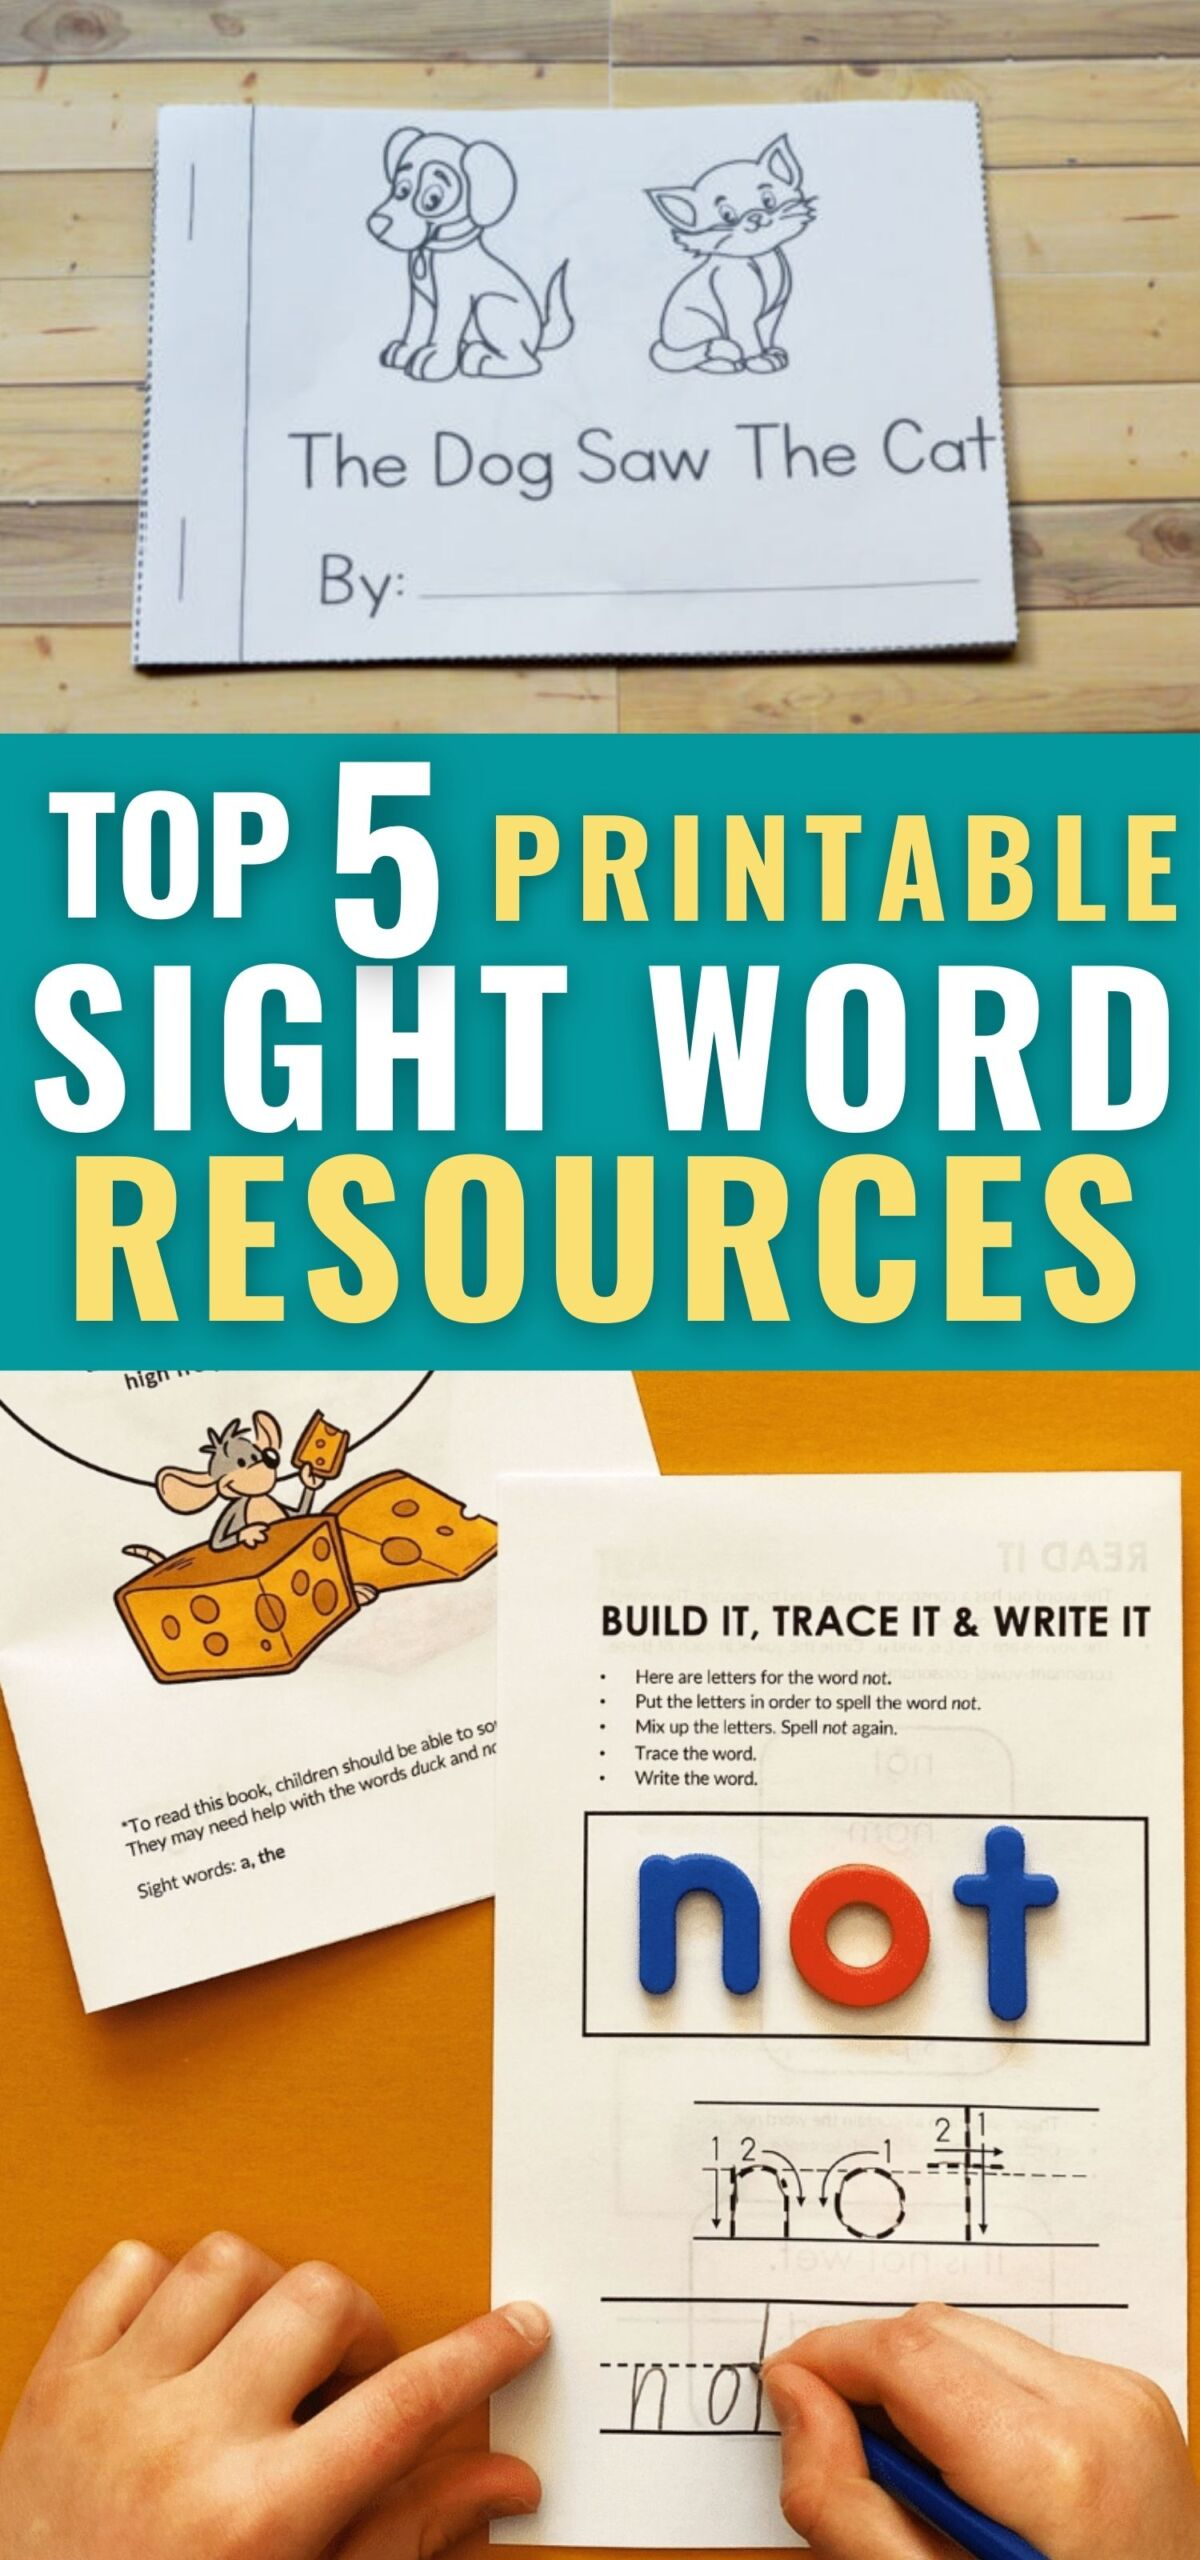 promotional collage featuring two different printable sight word resources